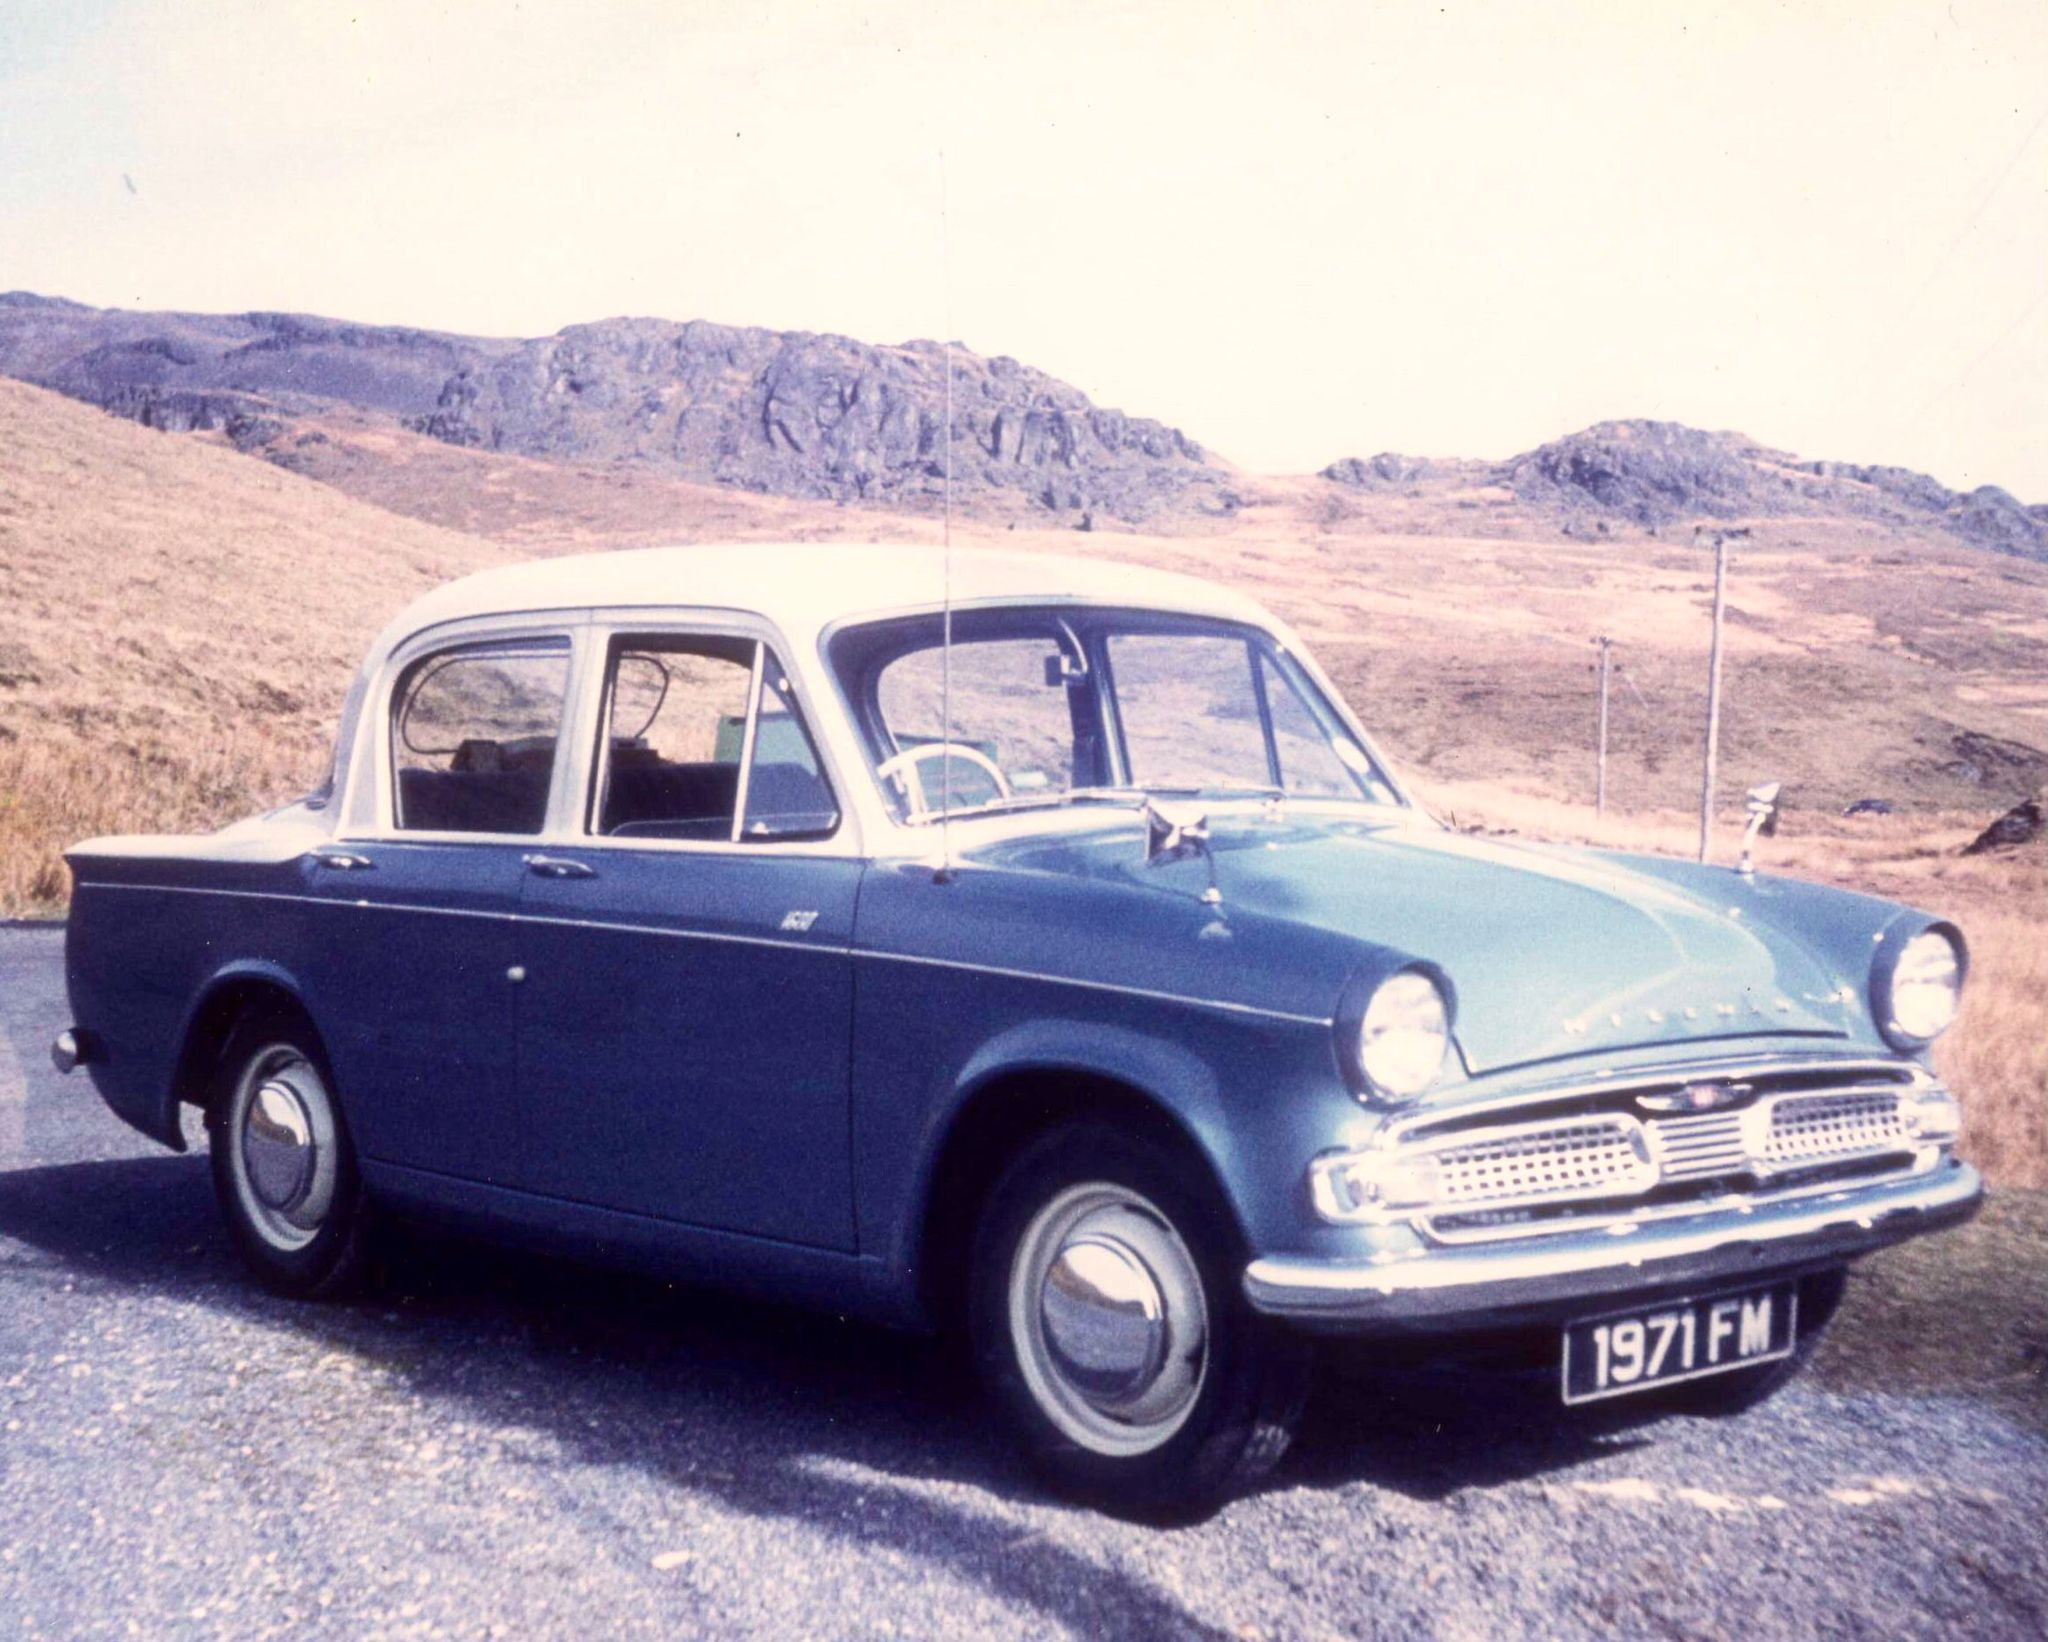 1962 hillman minx 1600 my first car 6 seats including front bench seat favourite cars. Black Bedroom Furniture Sets. Home Design Ideas